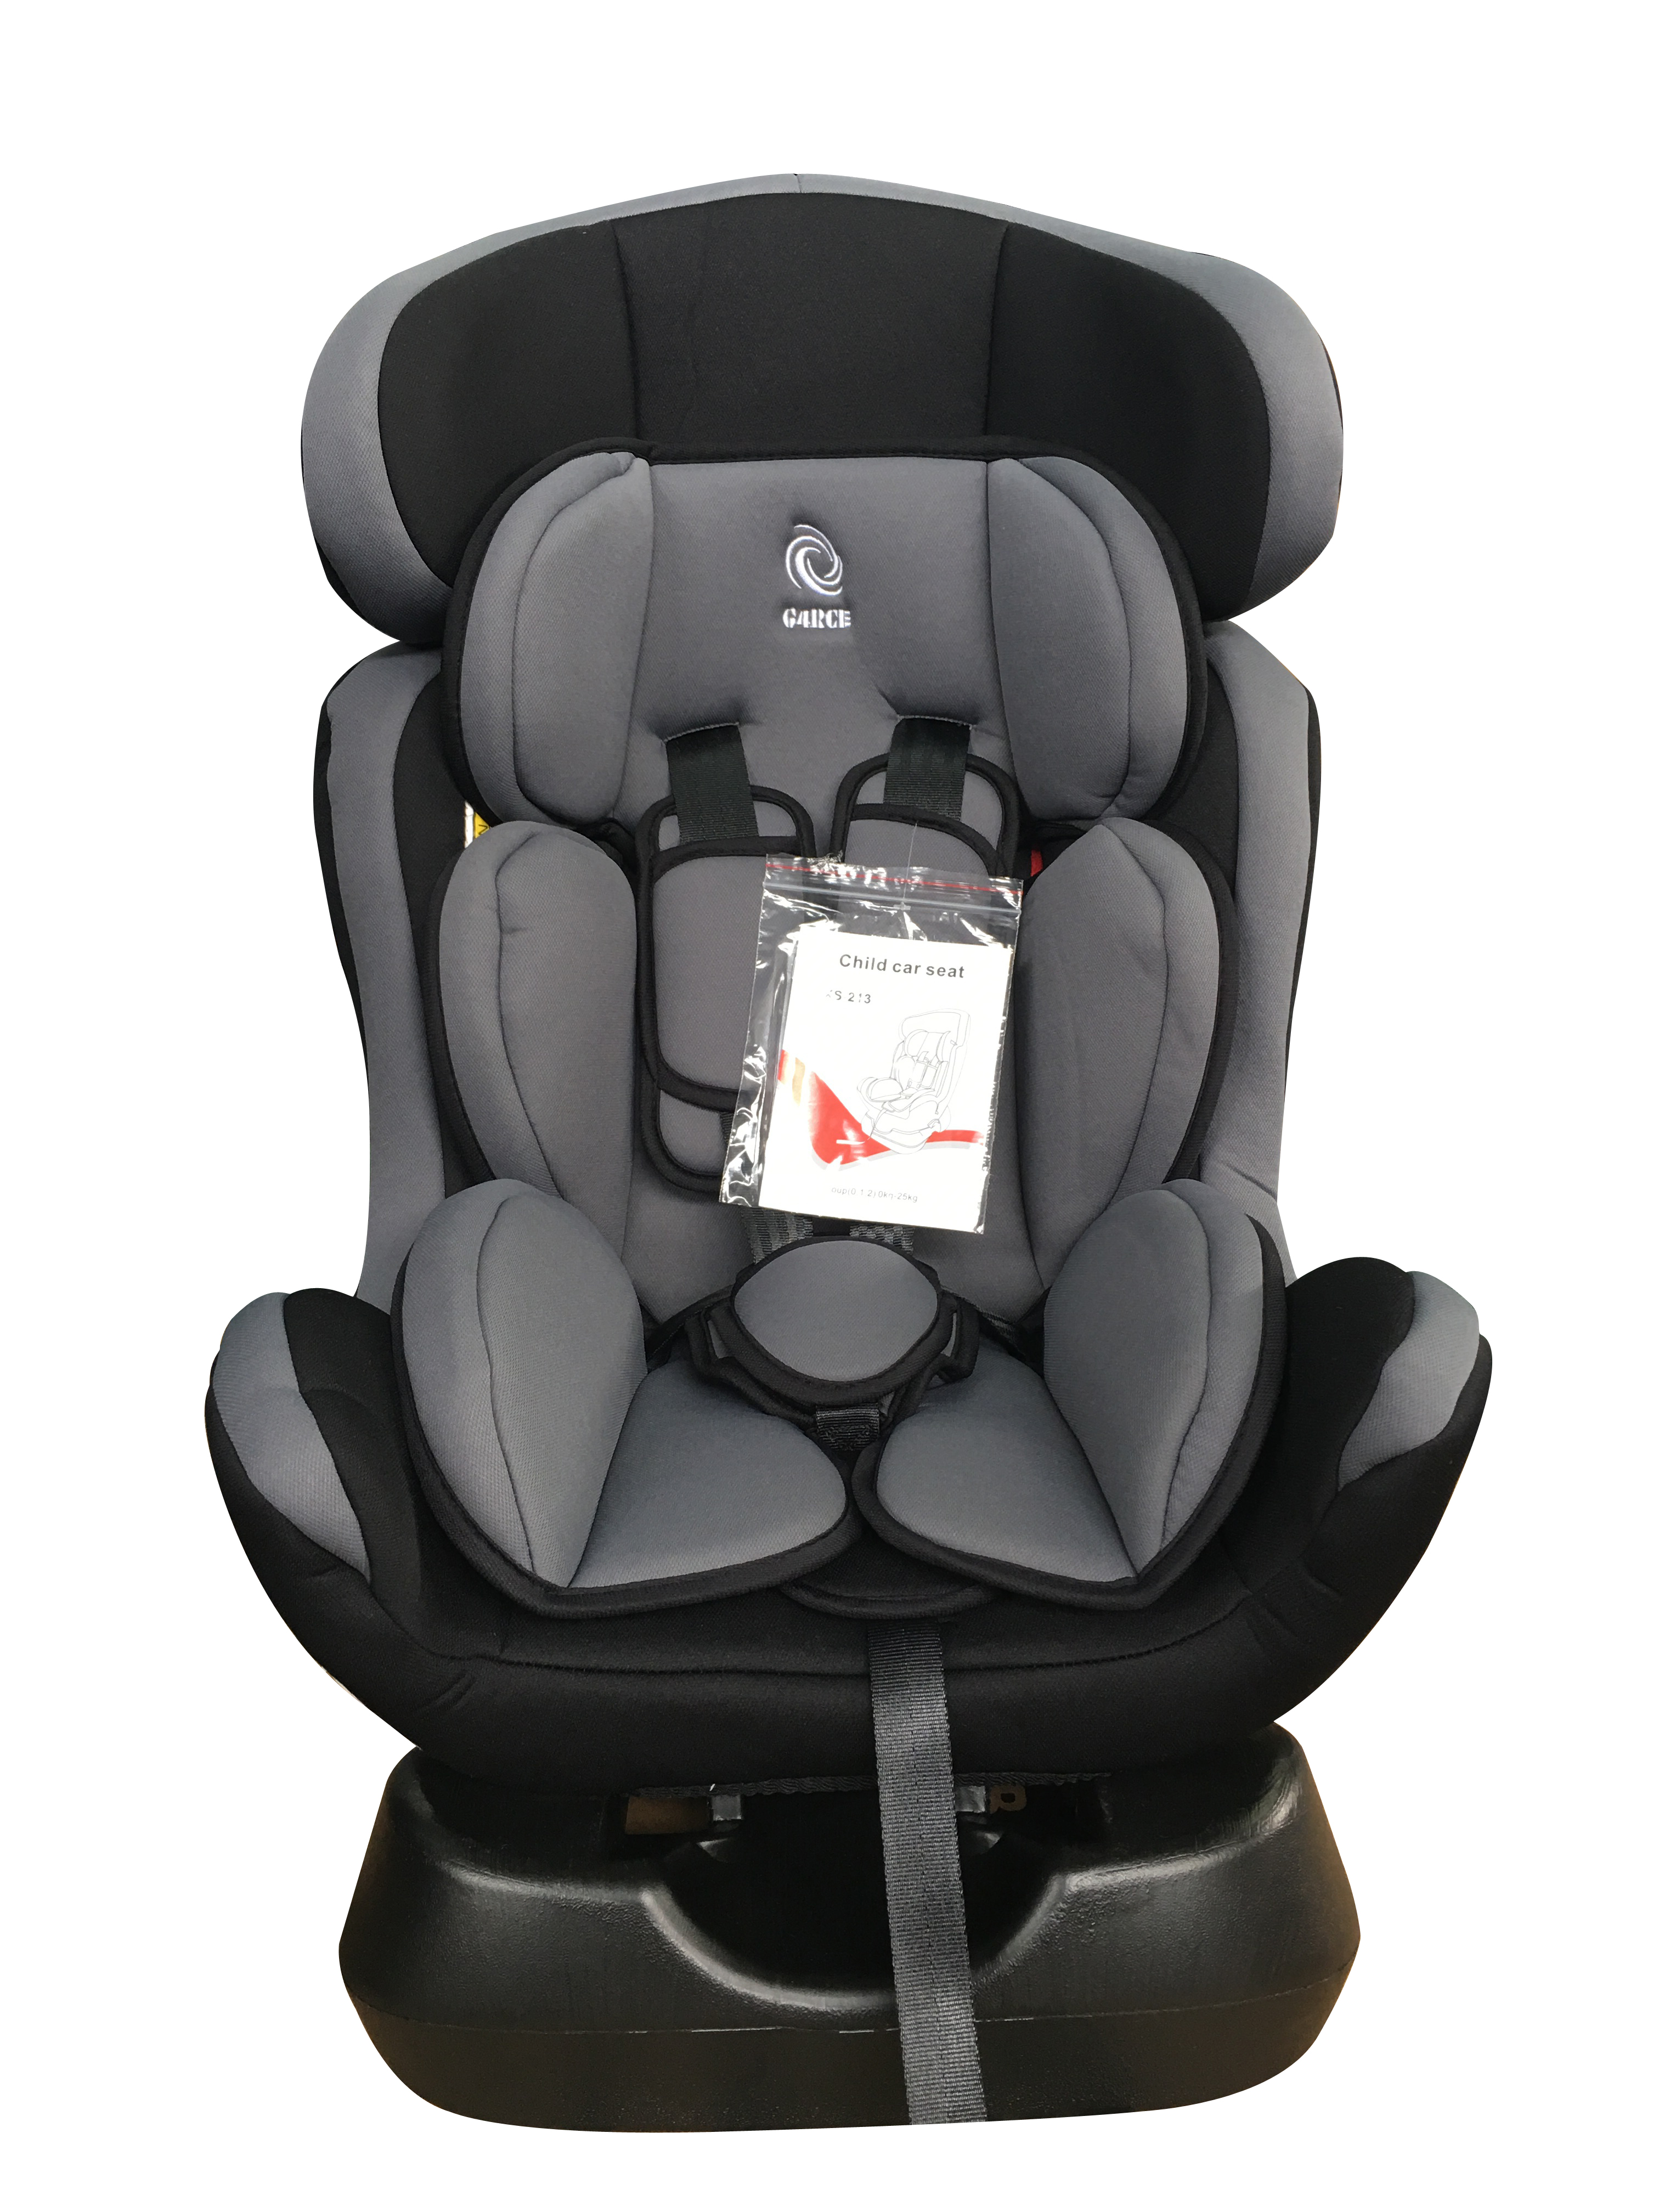 3 in 1 Child Baby Car Seat Booster GROUP 0 1 2 BIRTH TO 5 YEAR 25kg ...